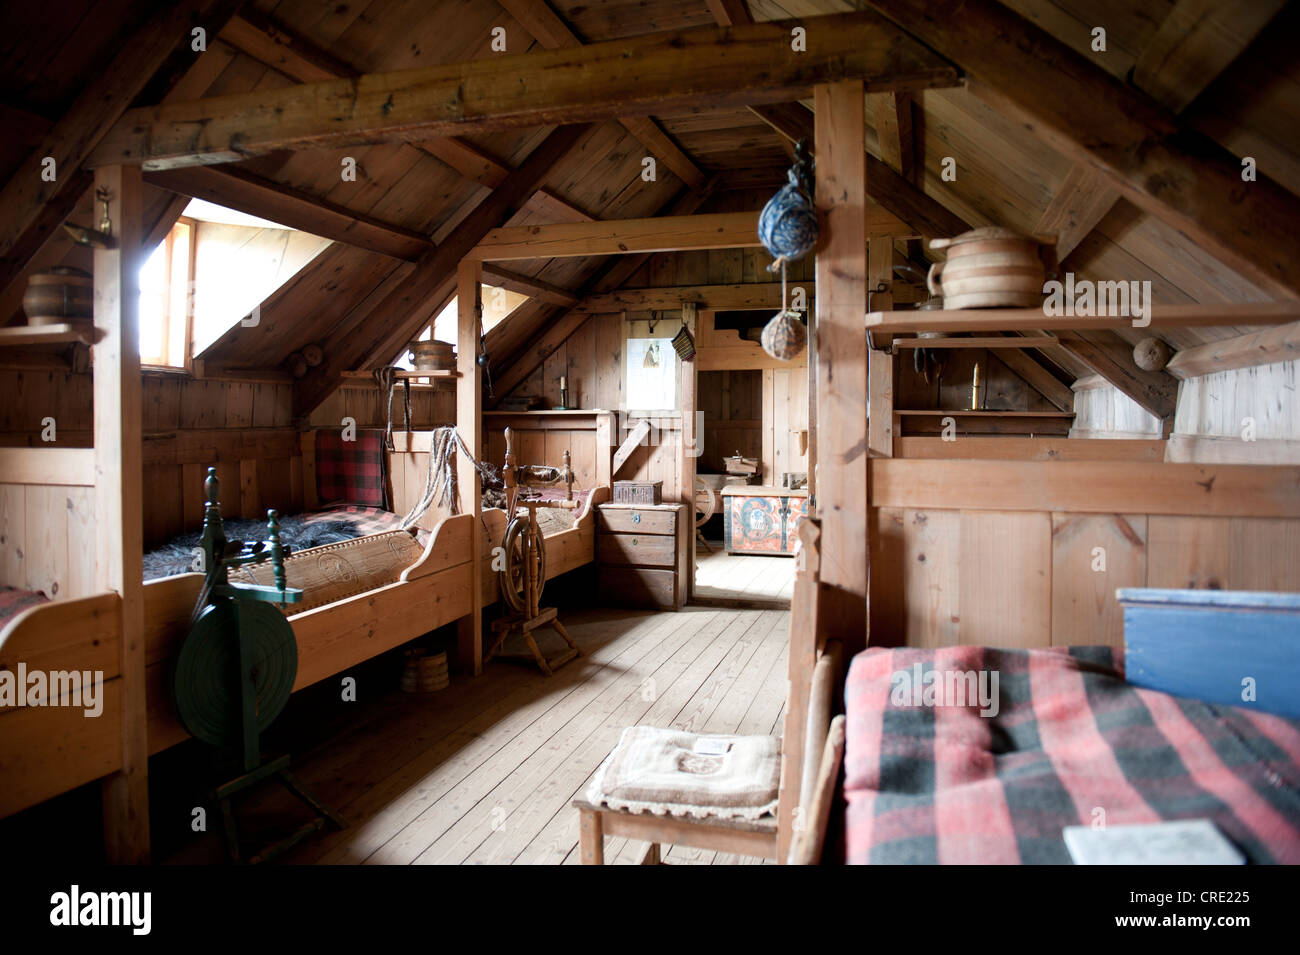 Living in the Middle Ages, interior view, wooden furniture, old sod house, turf and sod constructions, open-air - Stock Image